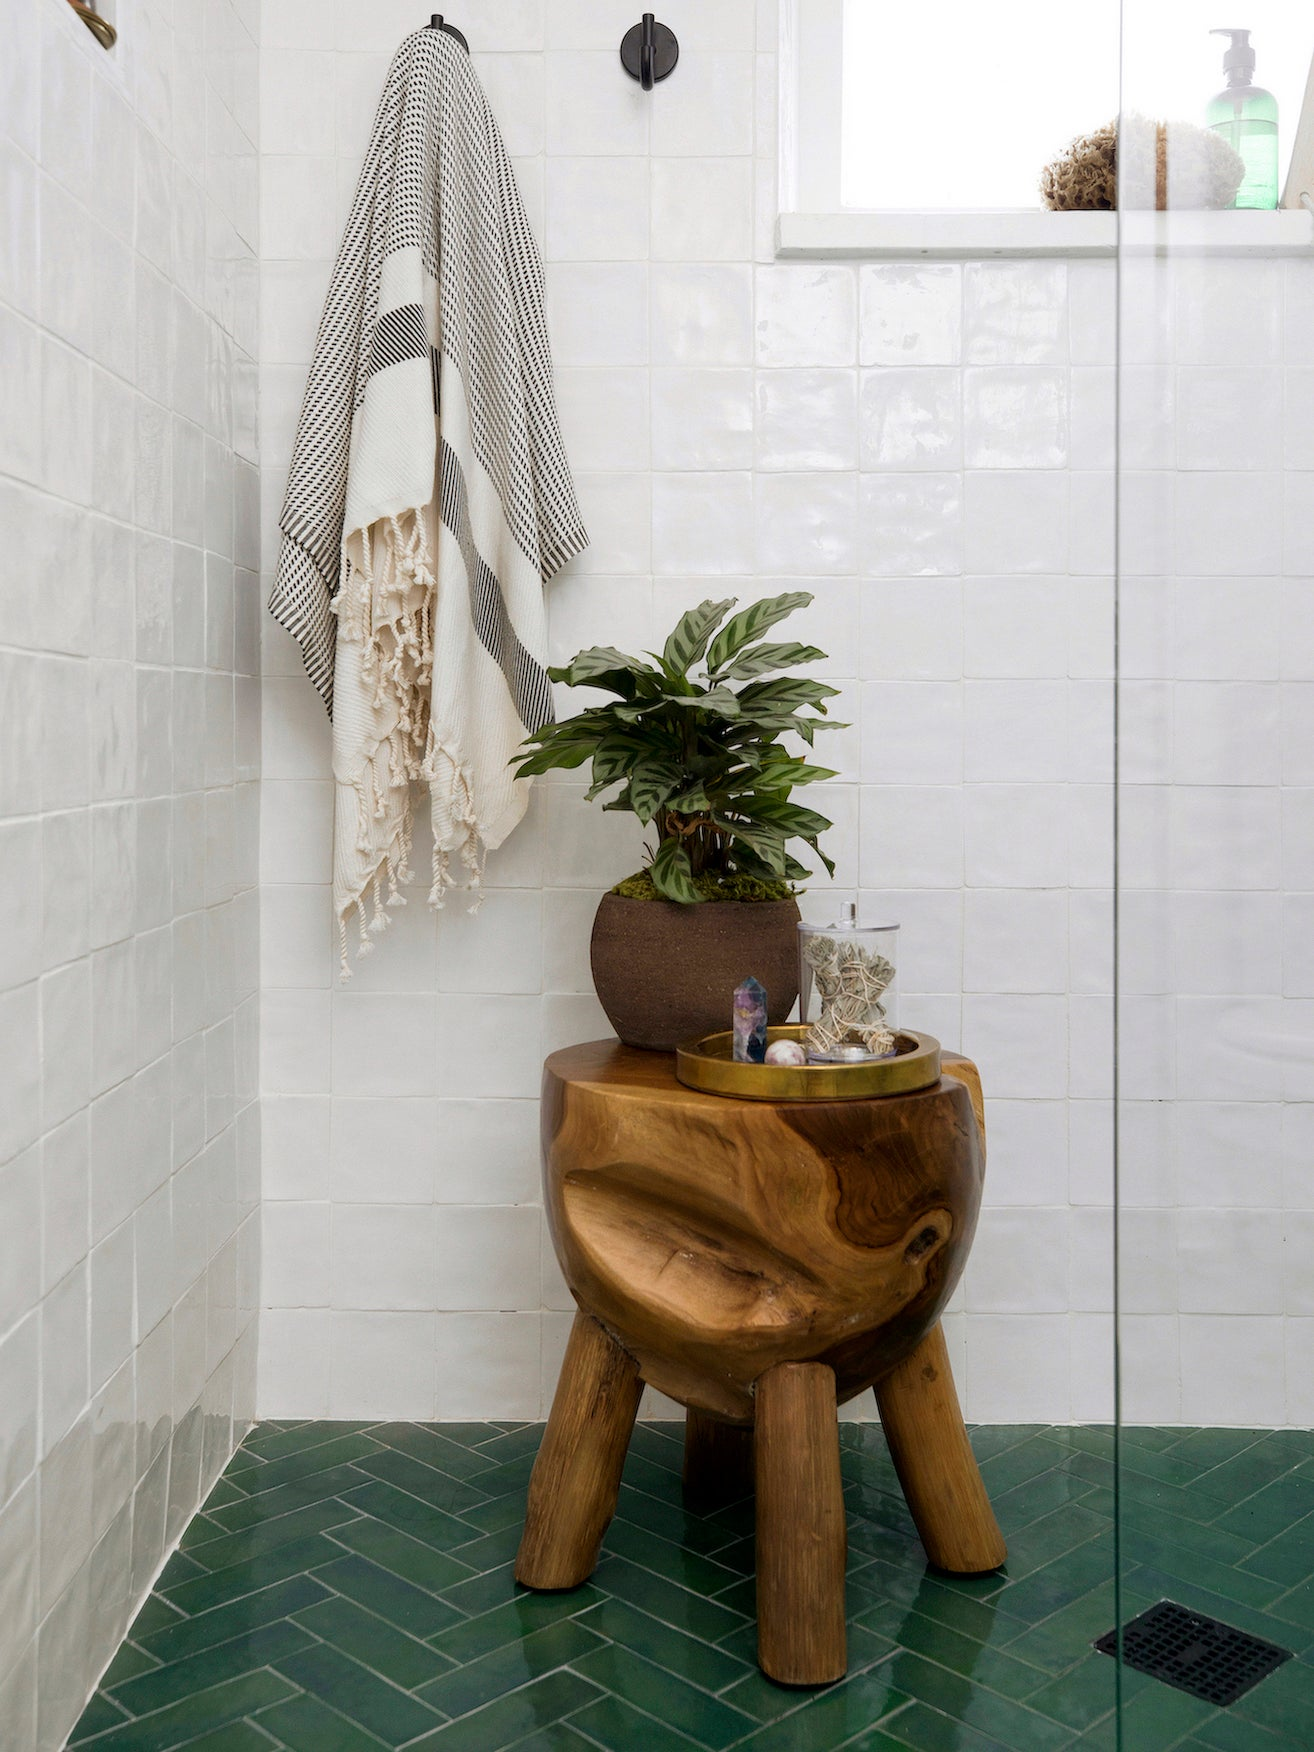 A Few Decor Swaps Turned This 5-by-7 Bathroom Into a Hammam Spa